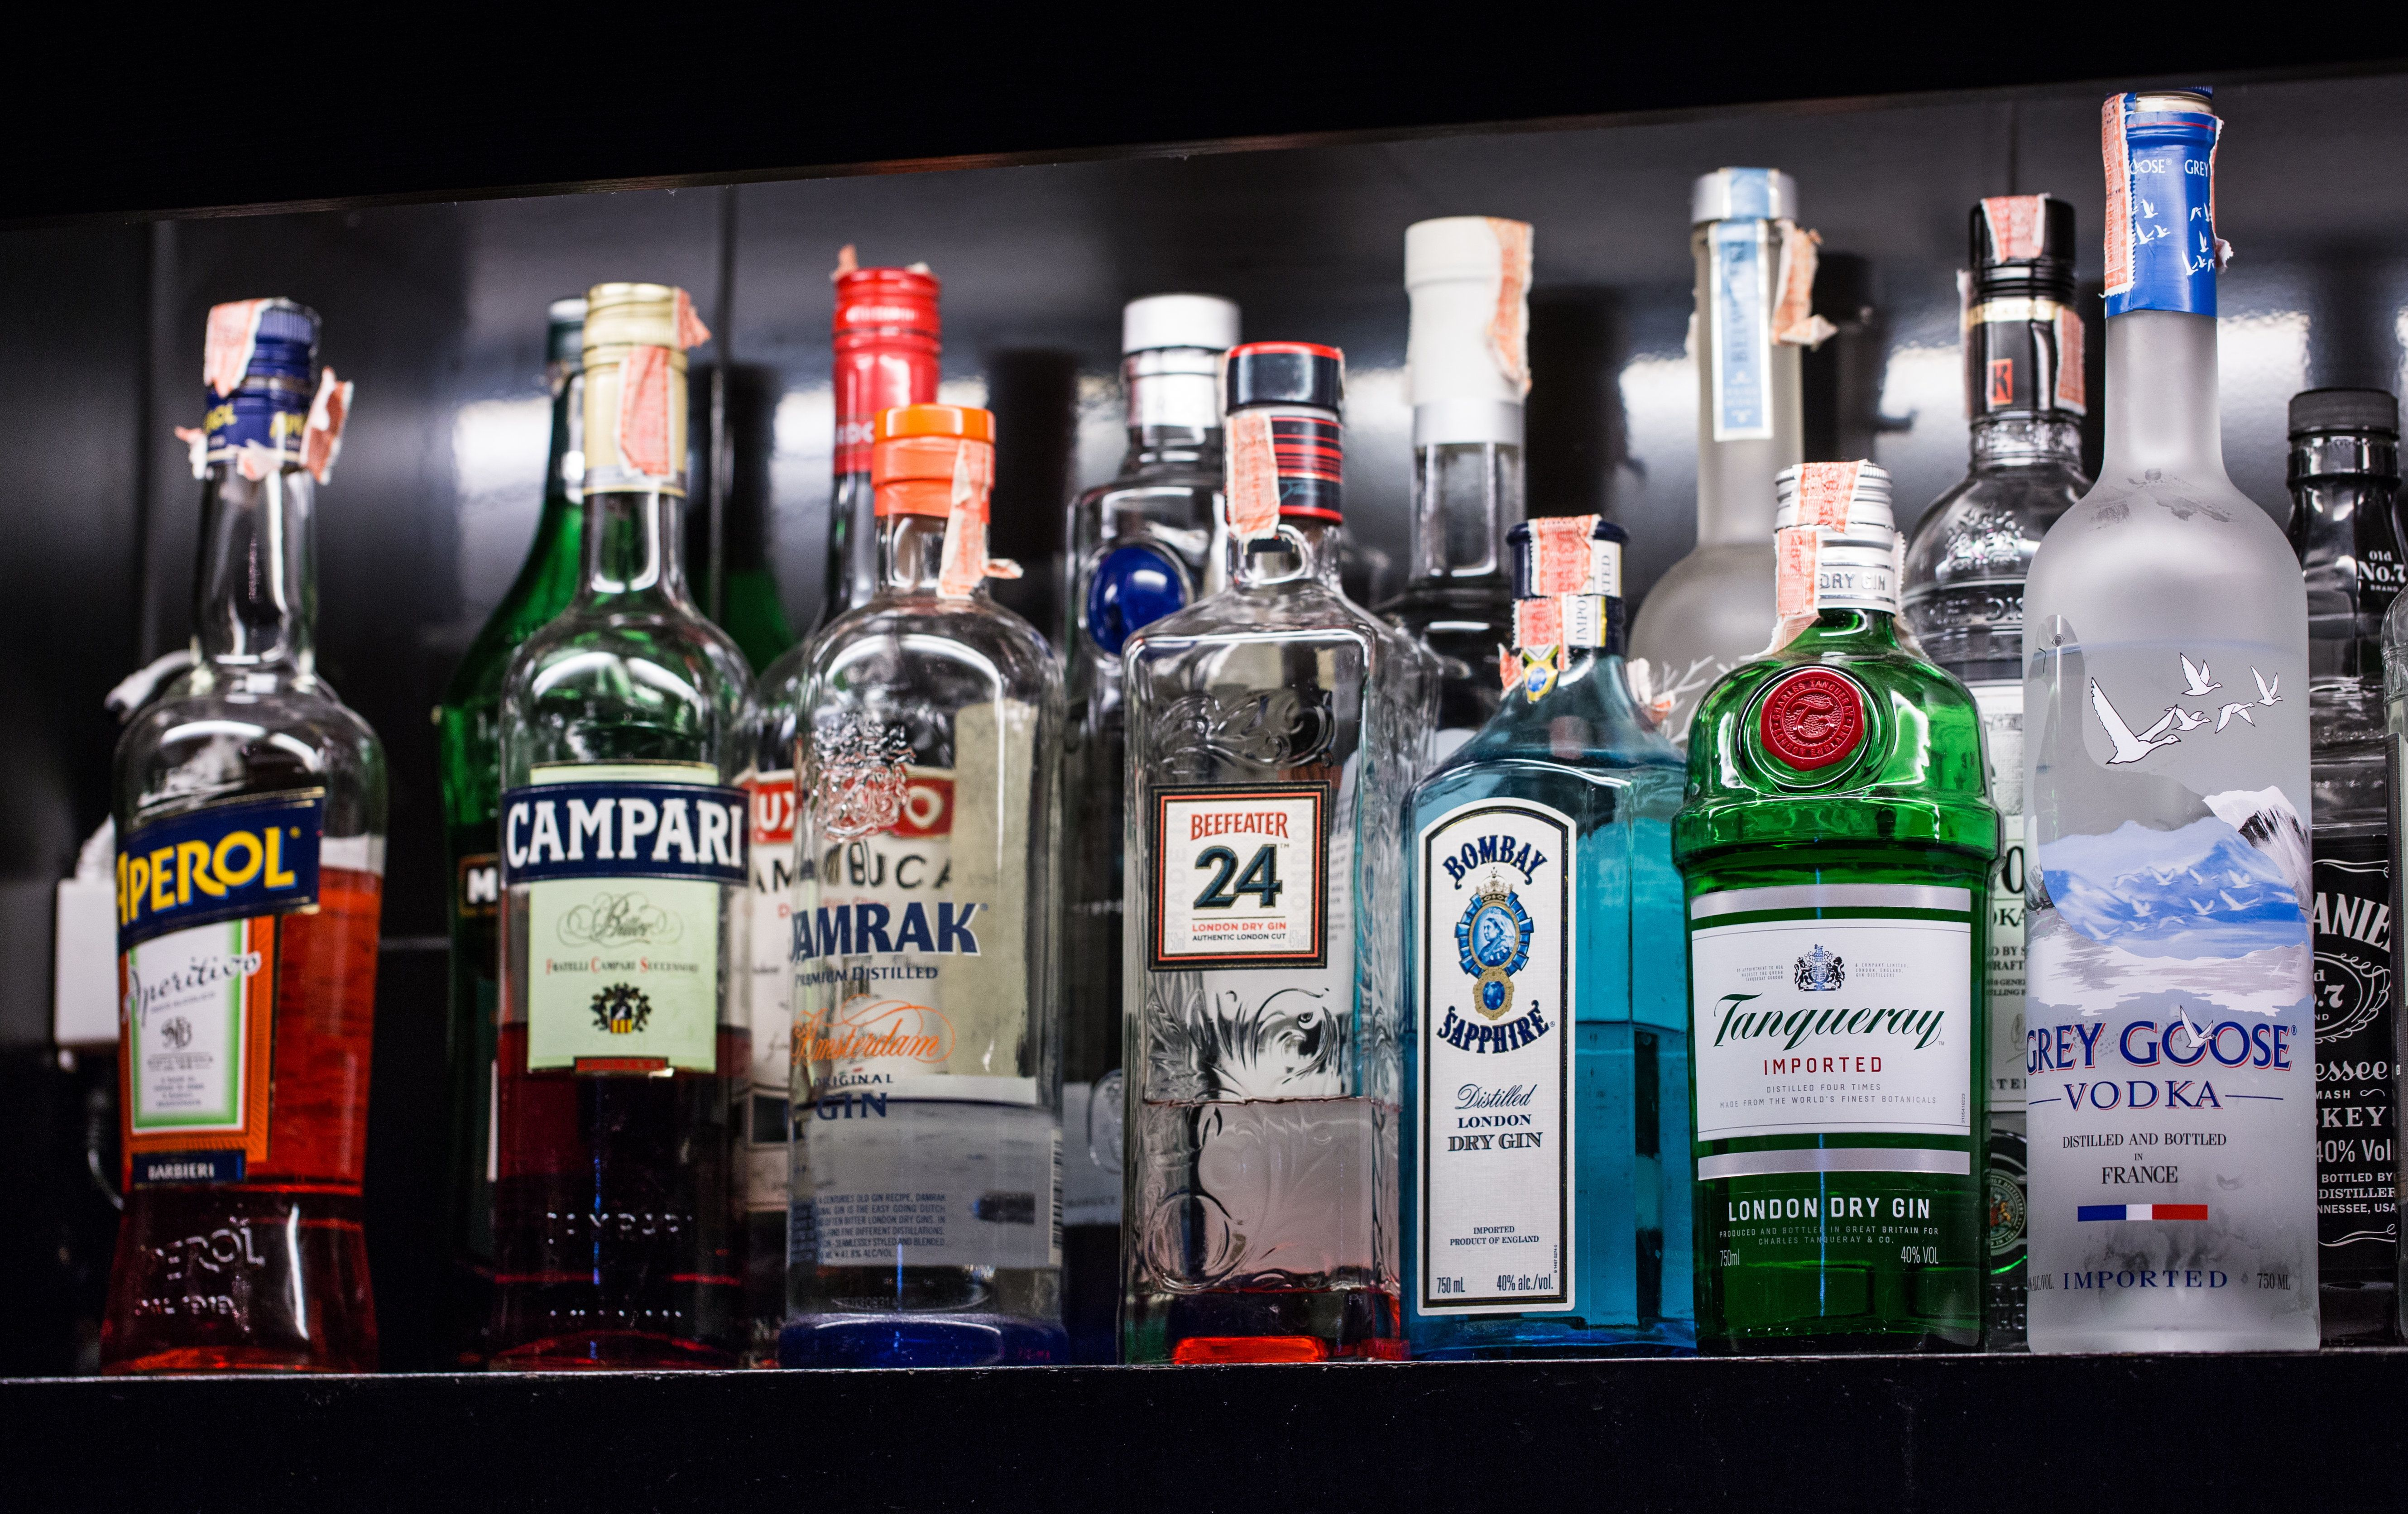 BANGKOK, THAILAND - October 23, 2017 - A variety of alcoholic beverages, Bernd, are placed on shelves in the bar for cocktails.